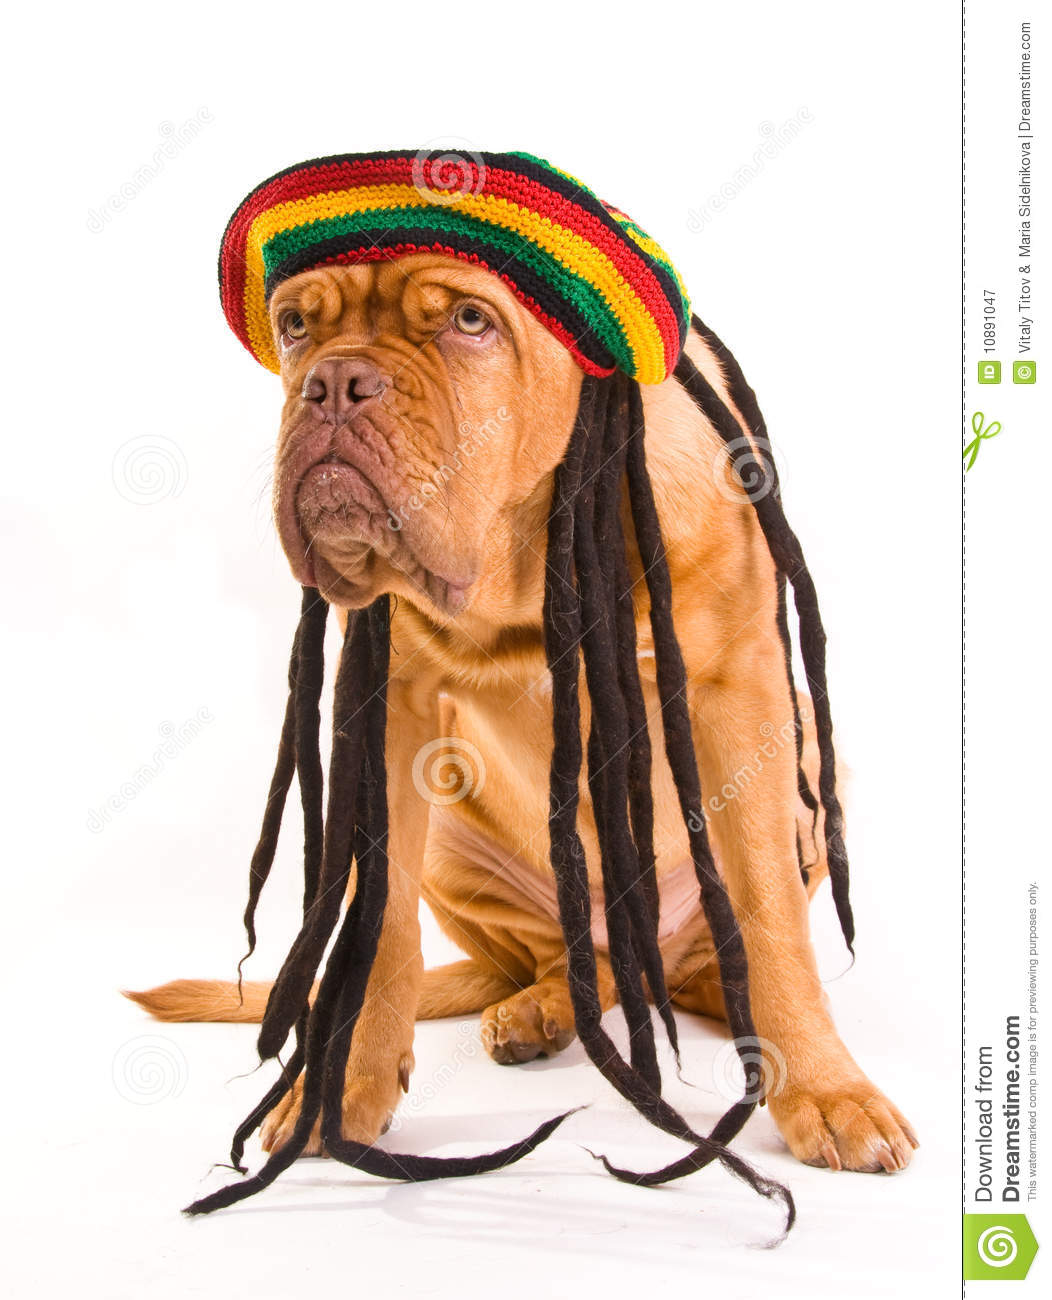 Rastafarian 2: Rastafarian Hat Dog Royalty Free Stock Photography